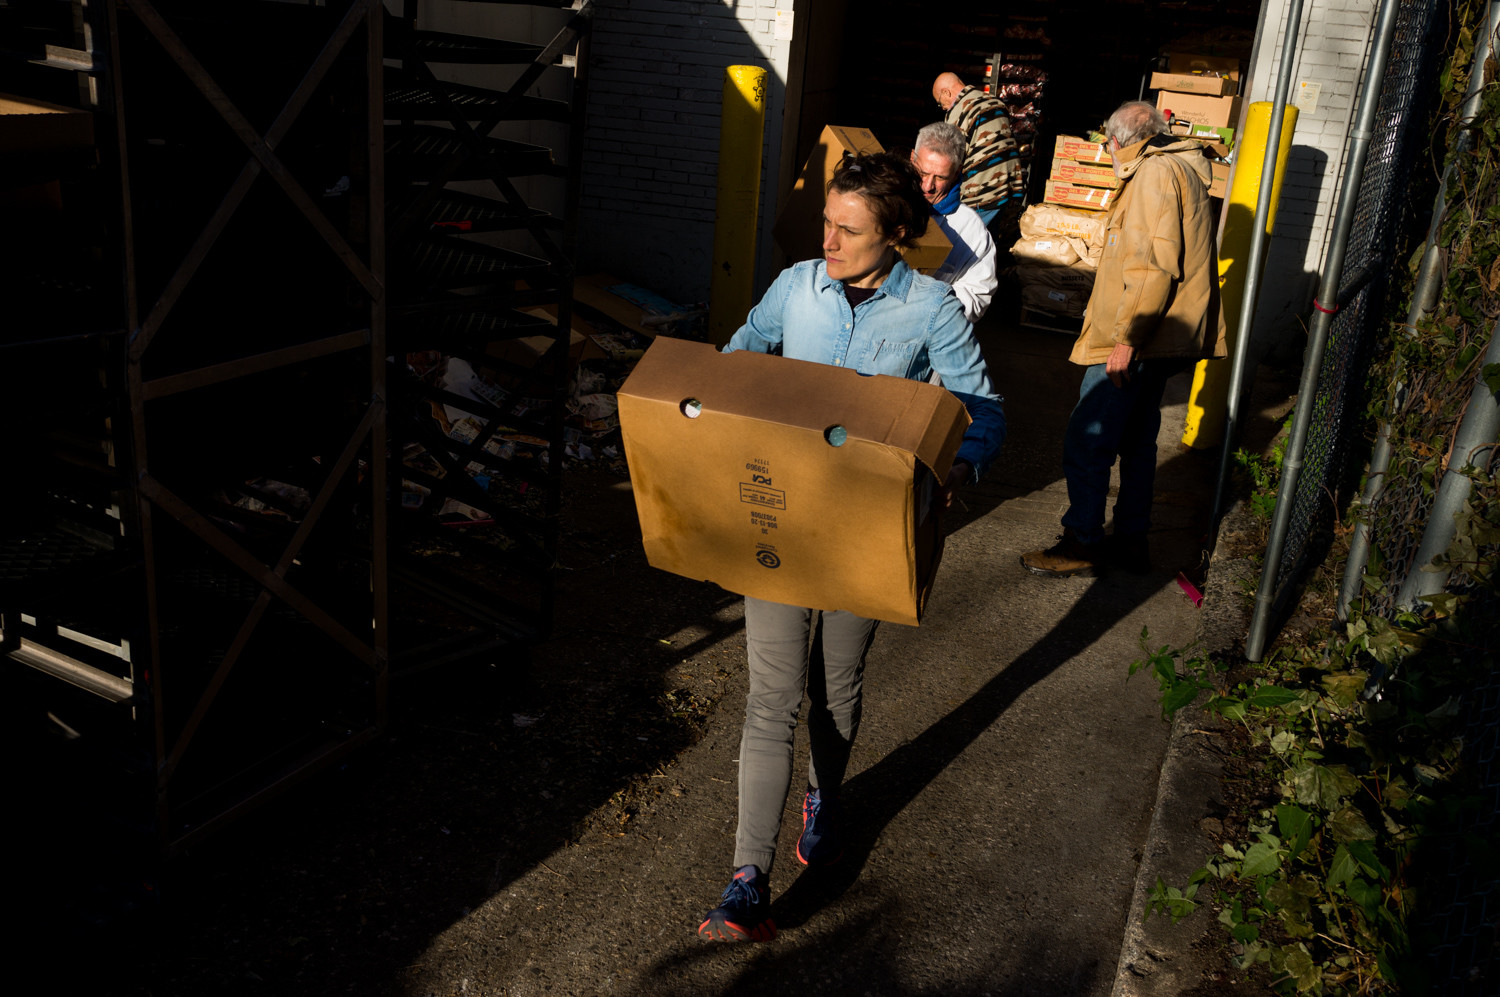 Kate Sann, a member of Welcoming Neighbors Northwest Bronx, carries a box of turkeys to a waiting car.